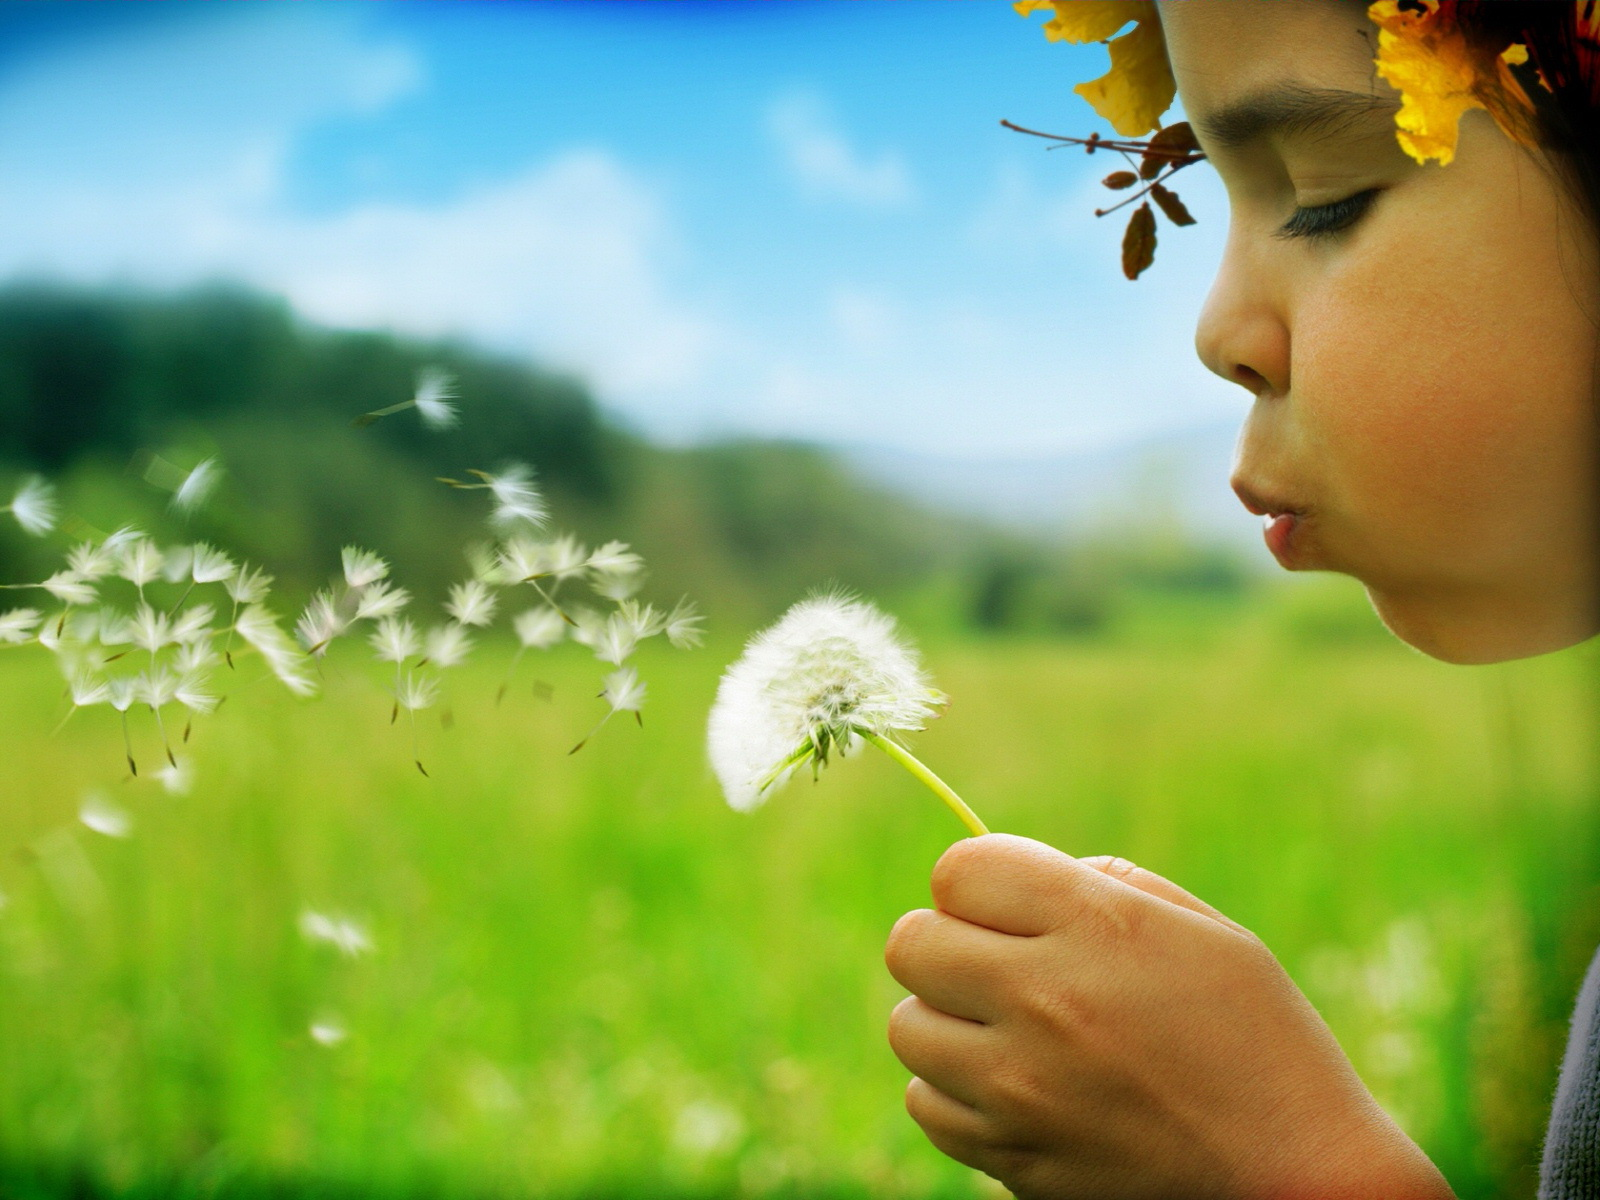 blowing dandelion in the meadow   Kids Wallpapers   Hi Wallpaperscom 1600x1200